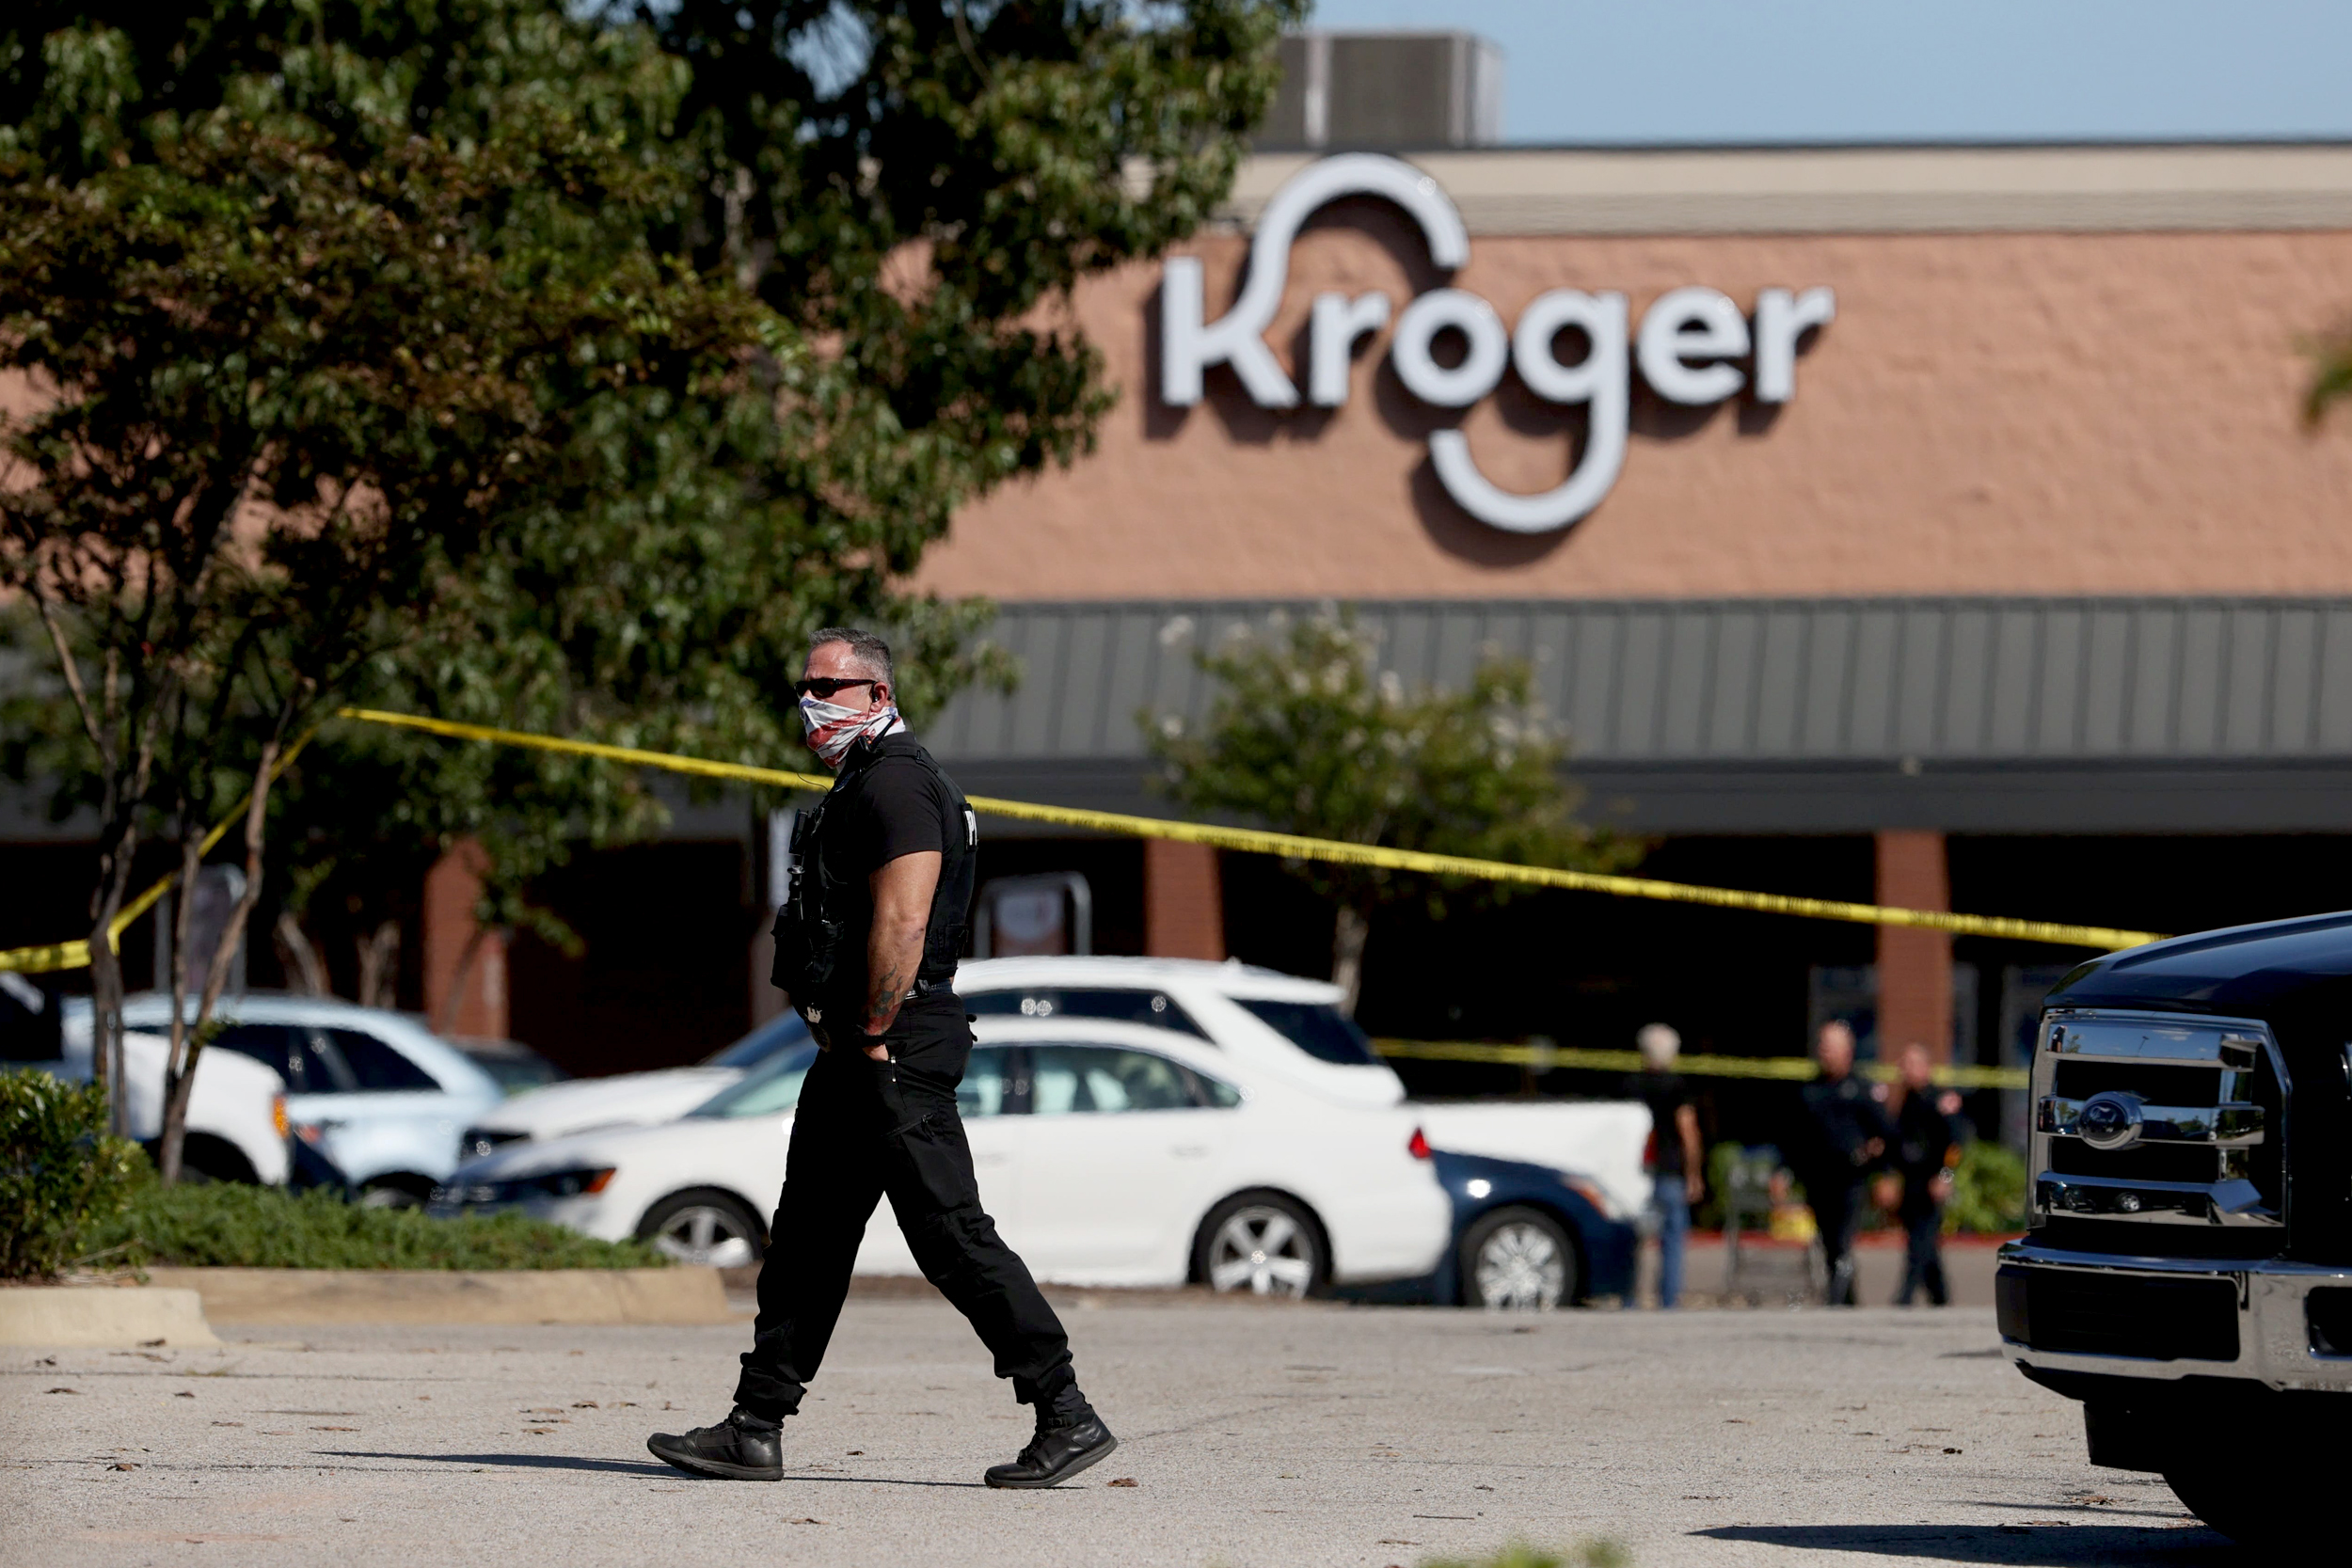 Suspect in Tennessee Kroger shooting was asked to leave his job that day, police say